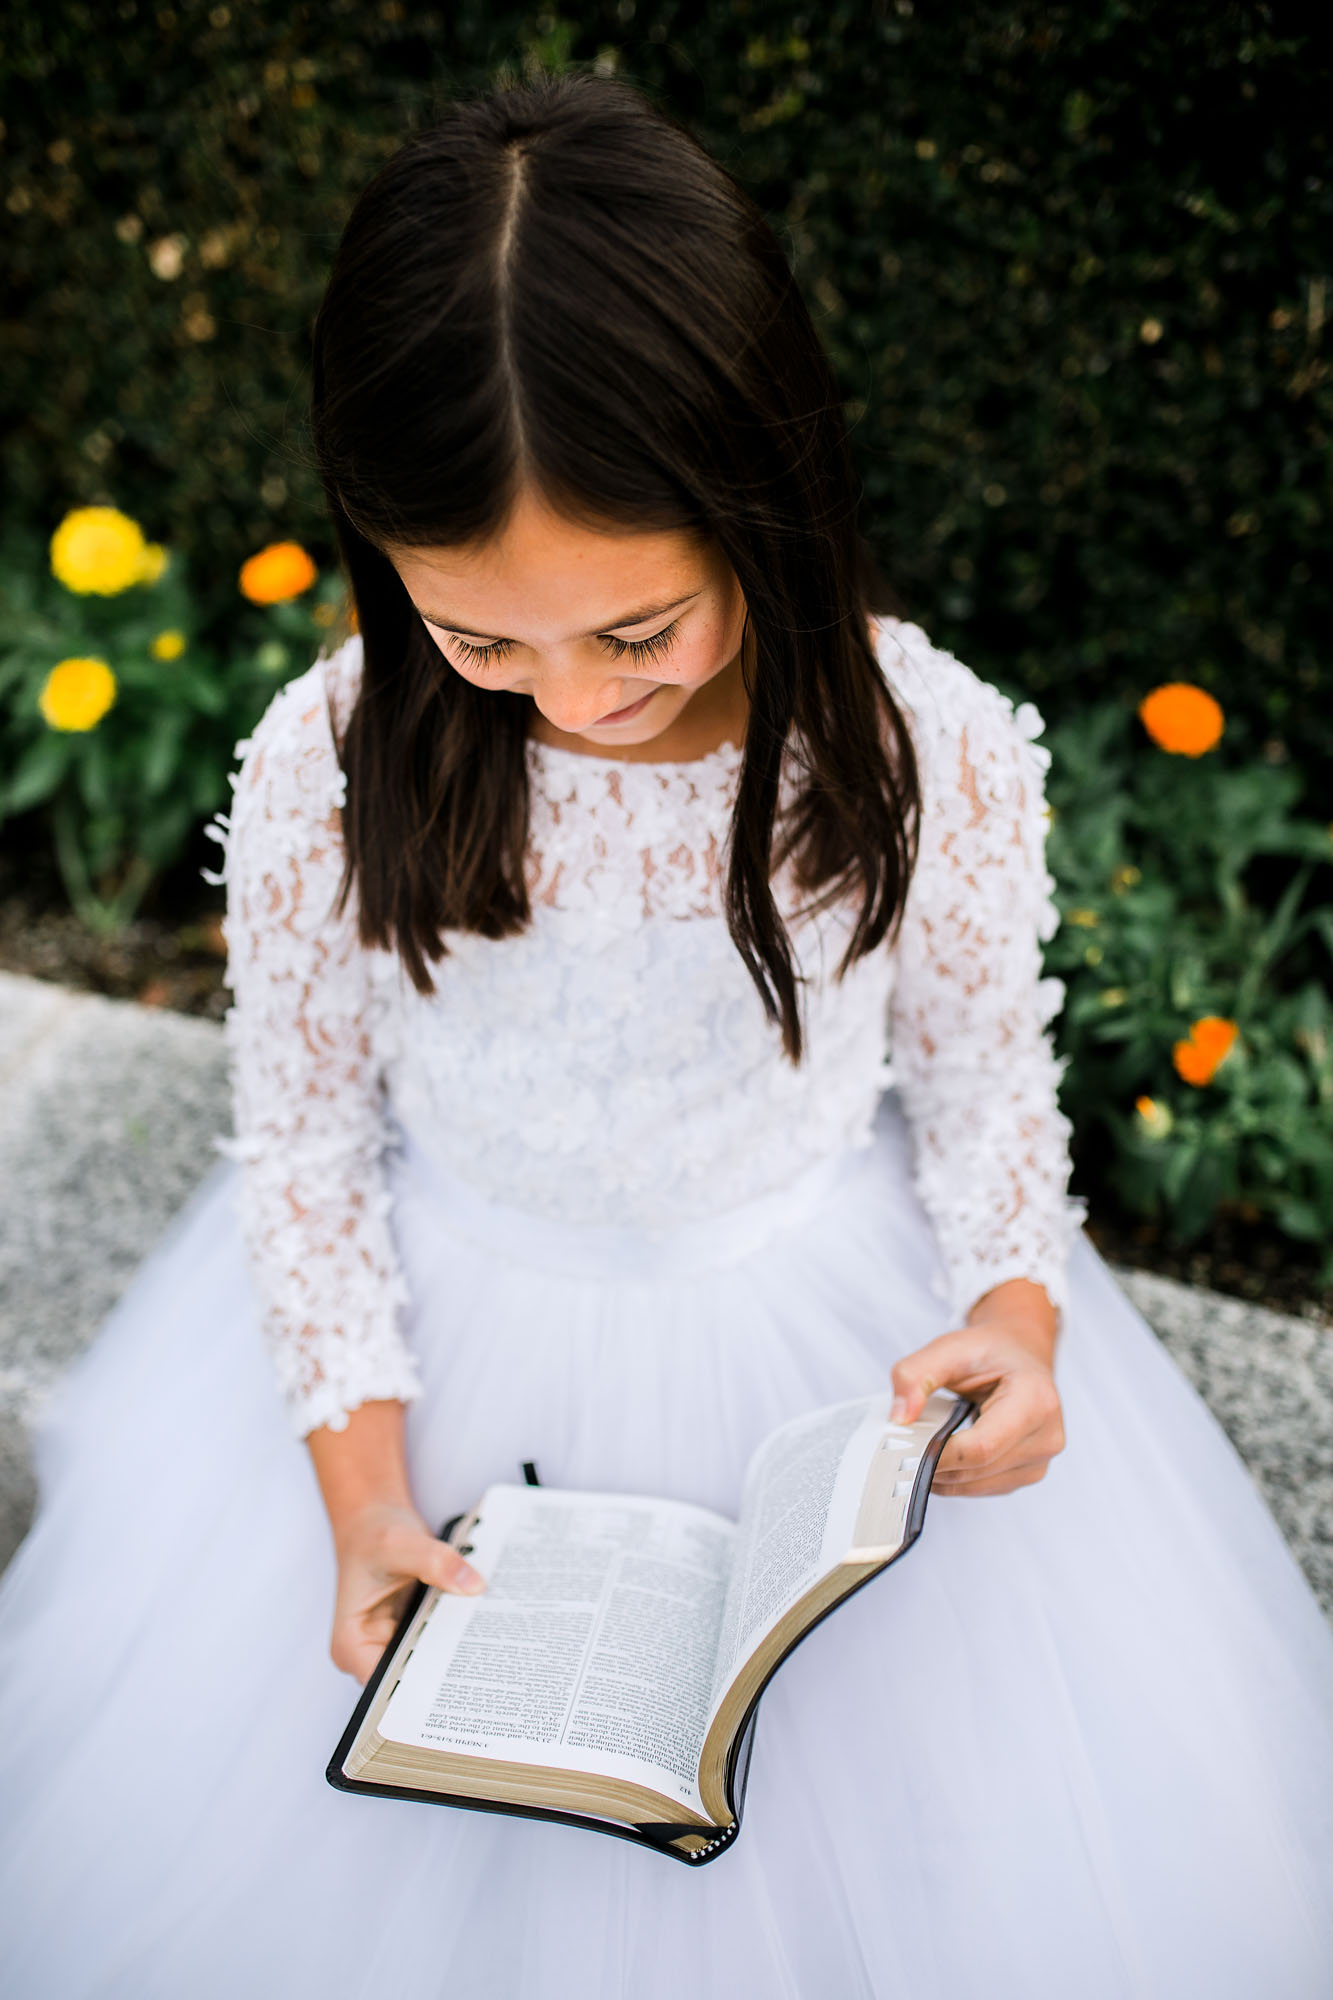 An 8-year-old girl in a white dress sits at the temple and reads her Book of Mormon during a photo session with Amy Wright Photography in Folsom, California.